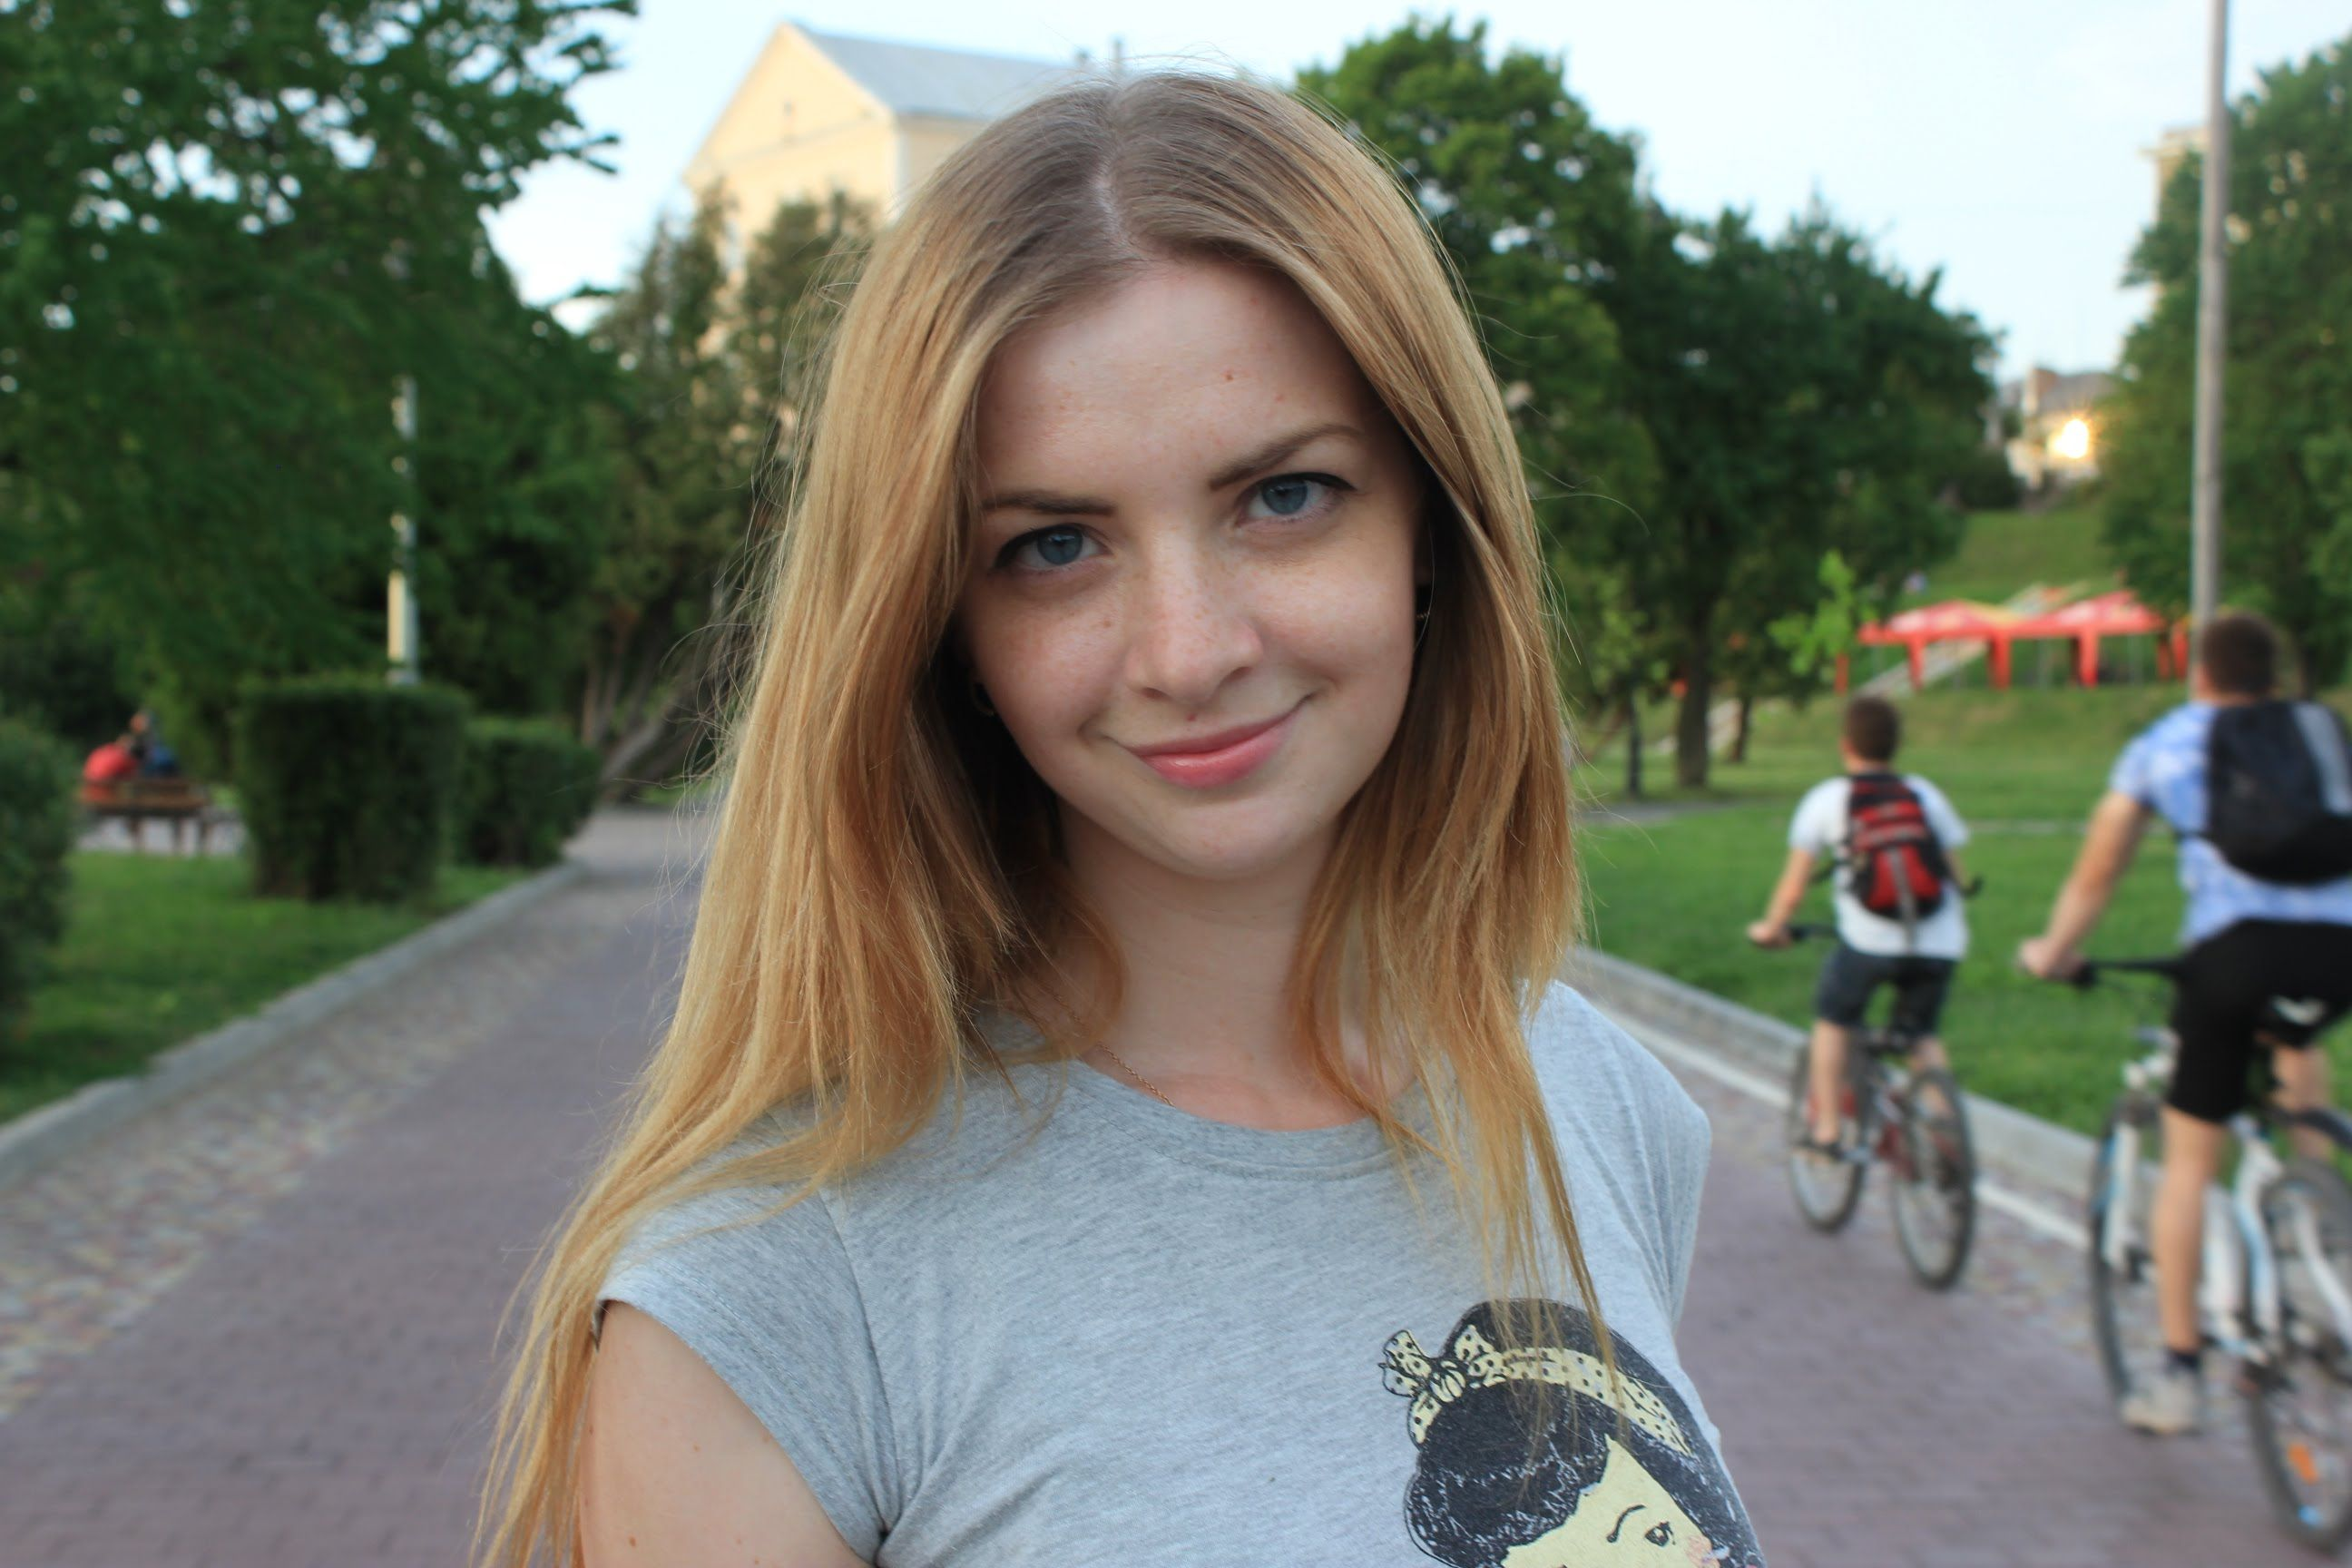 meet ukrainian girls